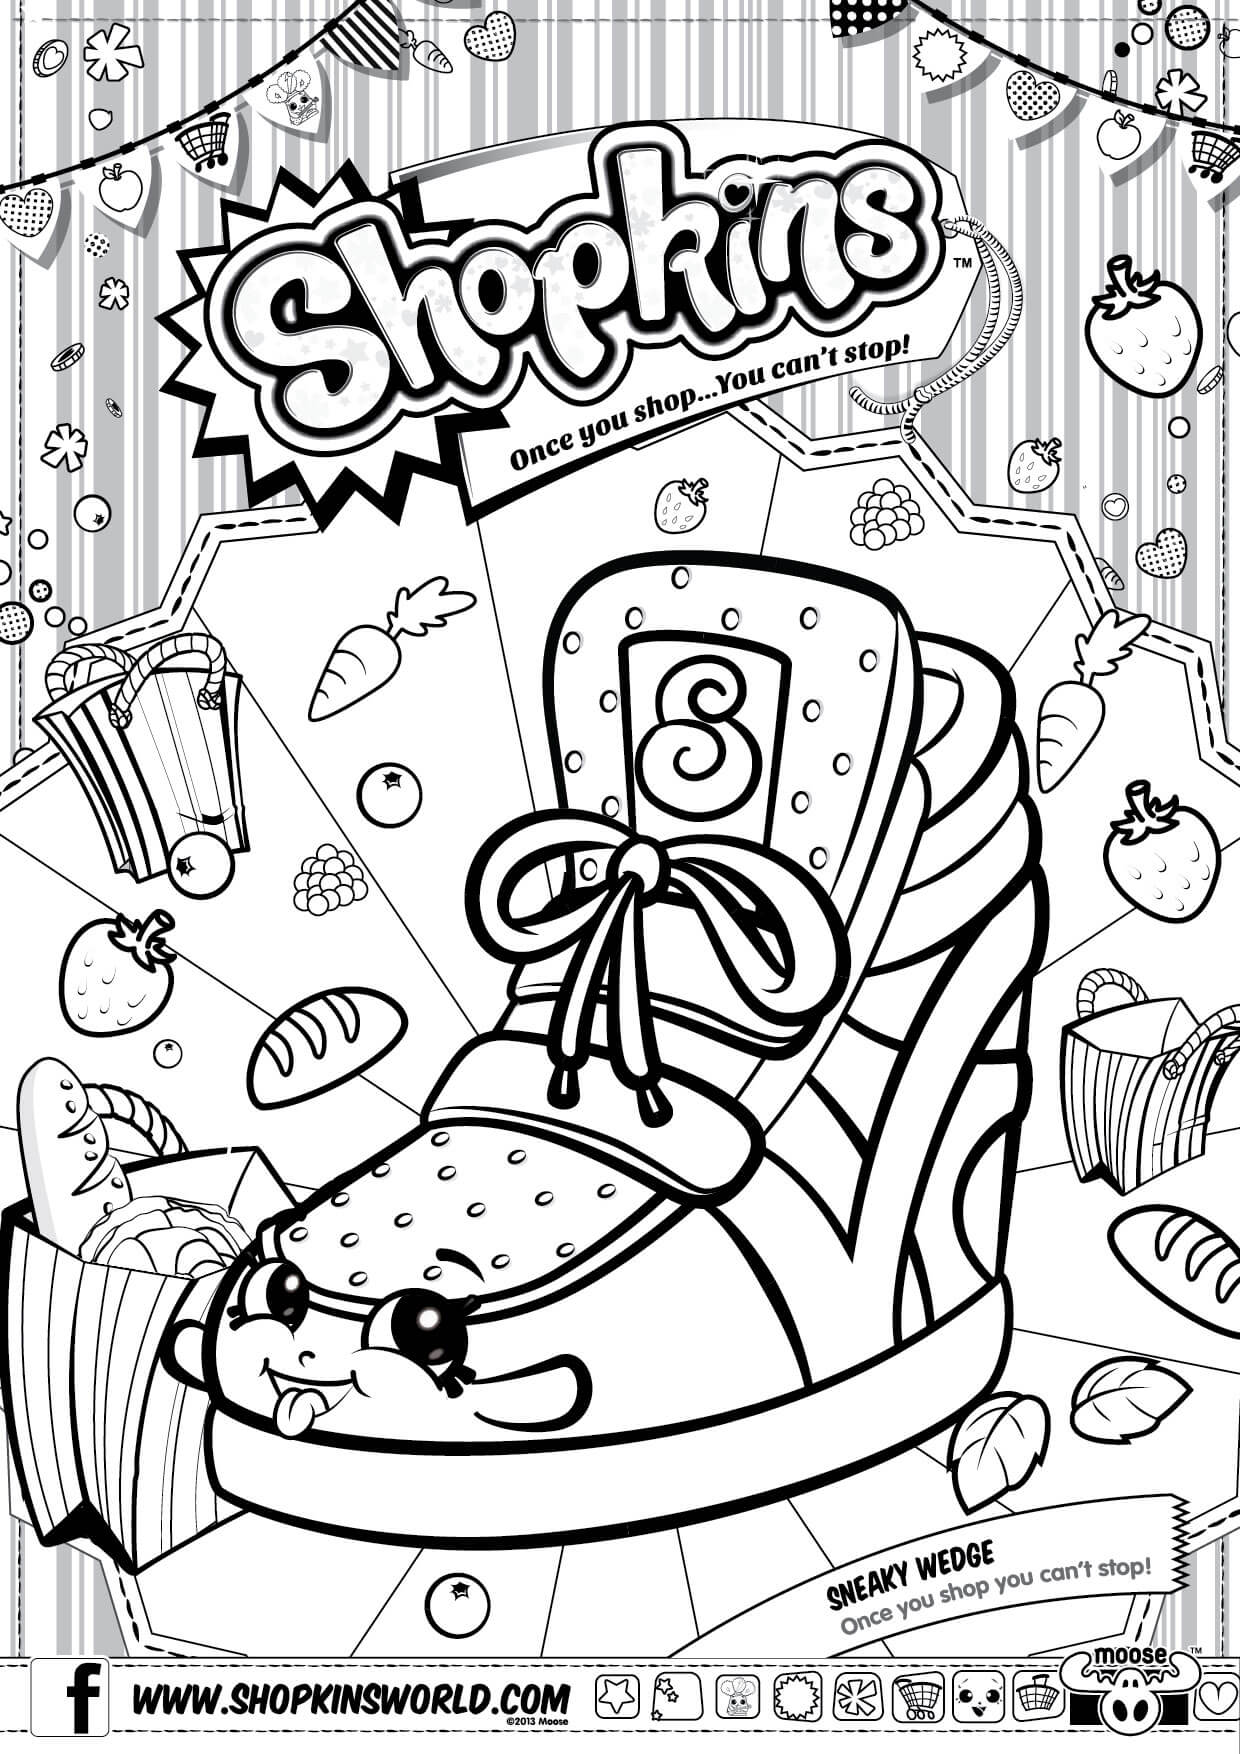 shopkins-coloring-page-0002-q1